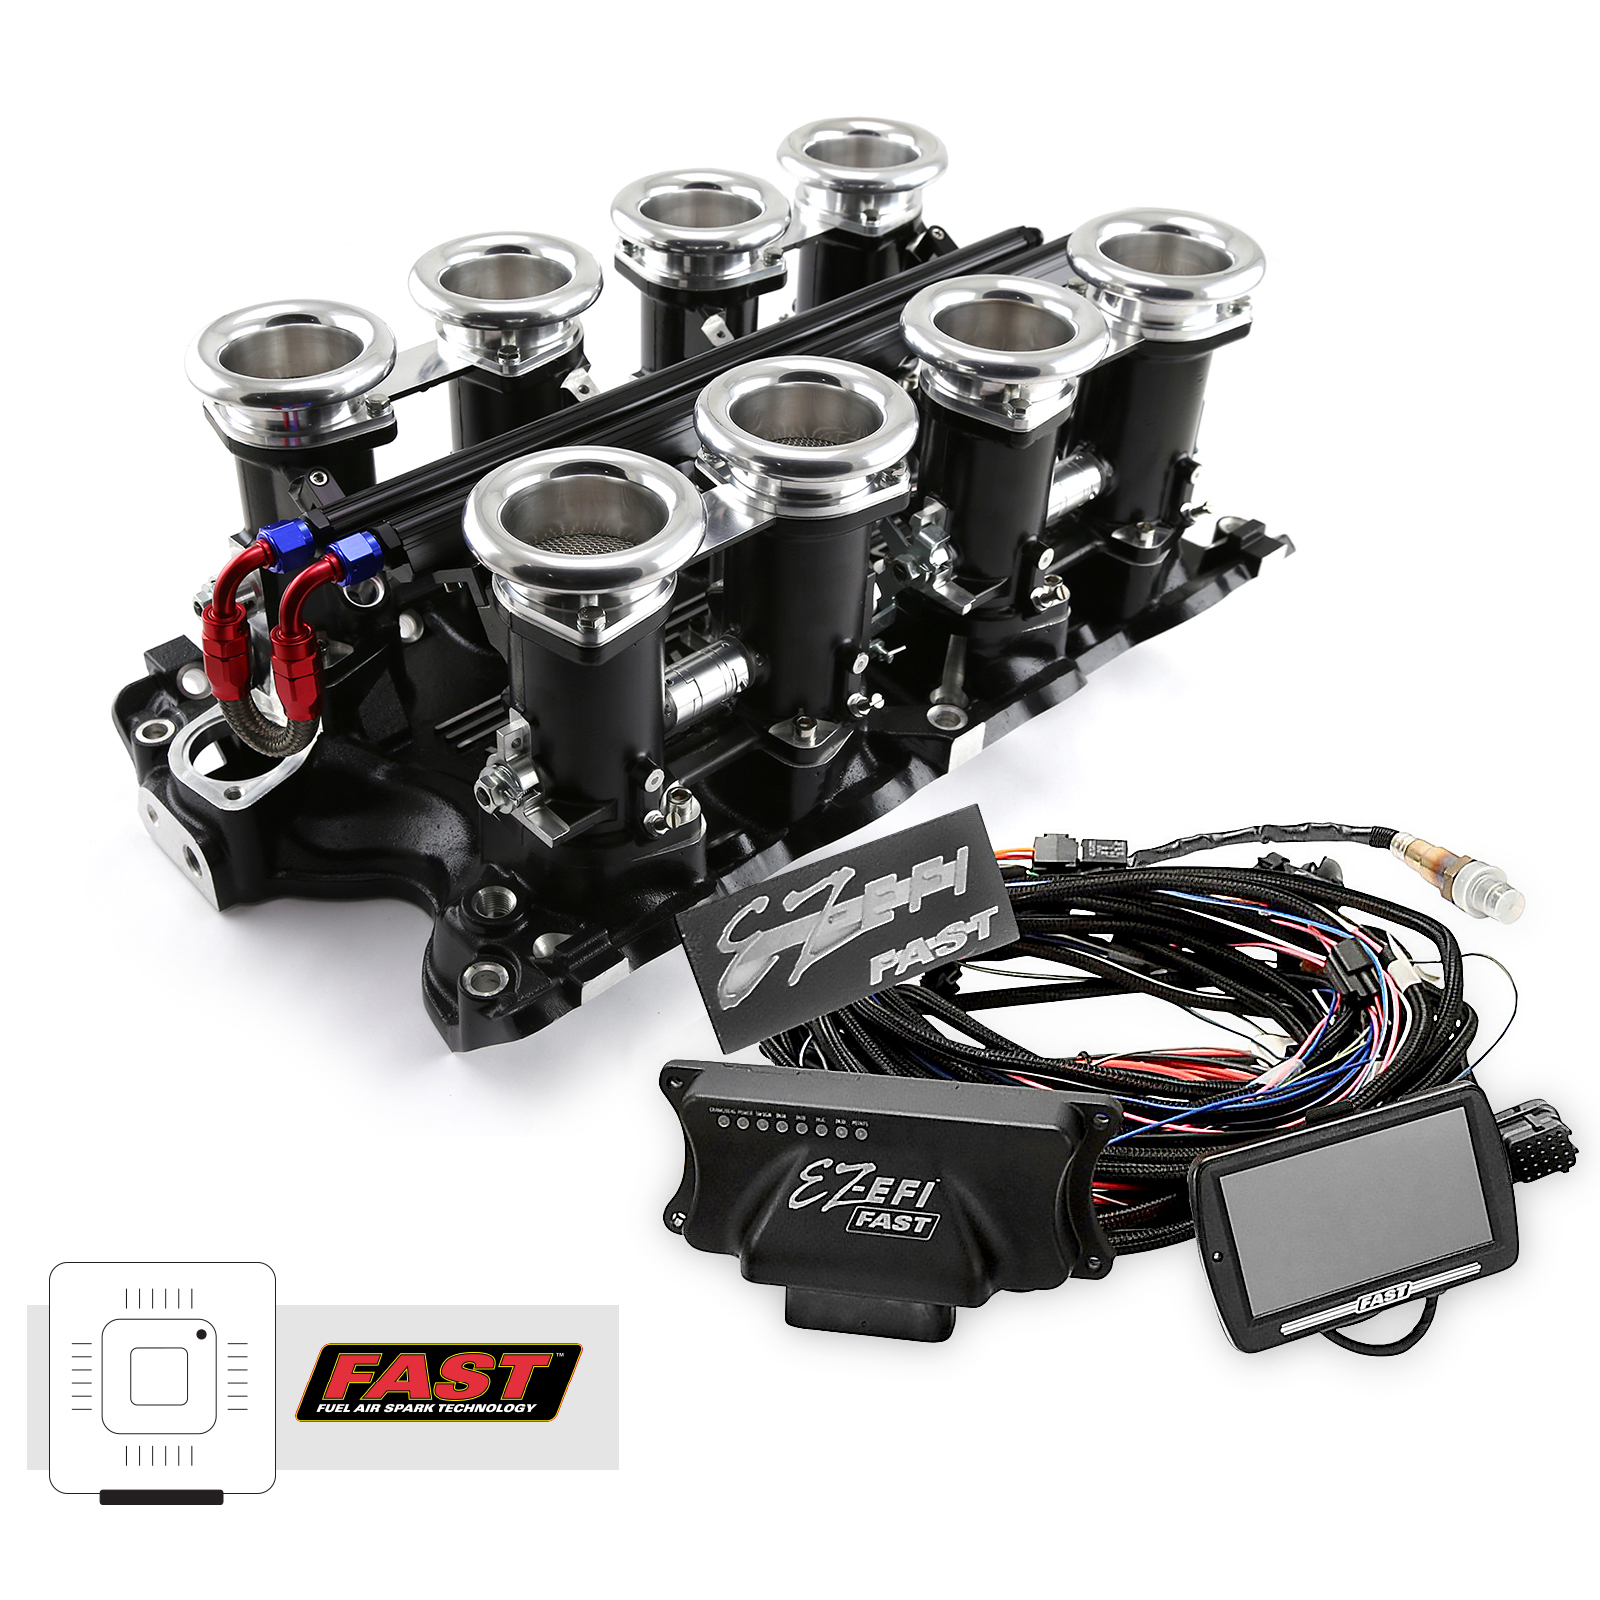 Ford BB 460 Downdraft + FAST EZ-EFI 2.0 Fuel Injection System - Black